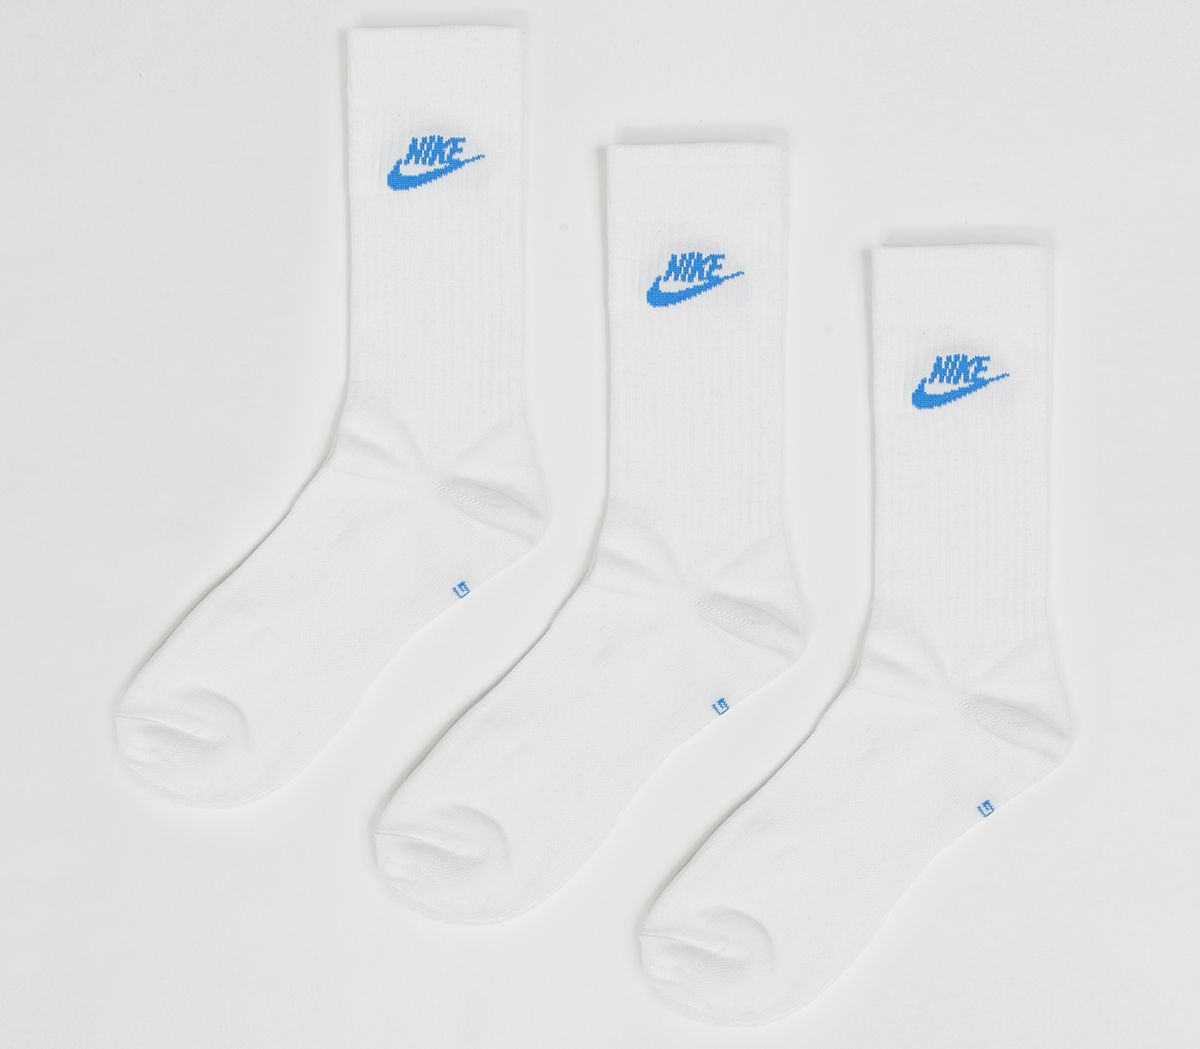 Nike Every Essential Crew Sock 3 Pairs